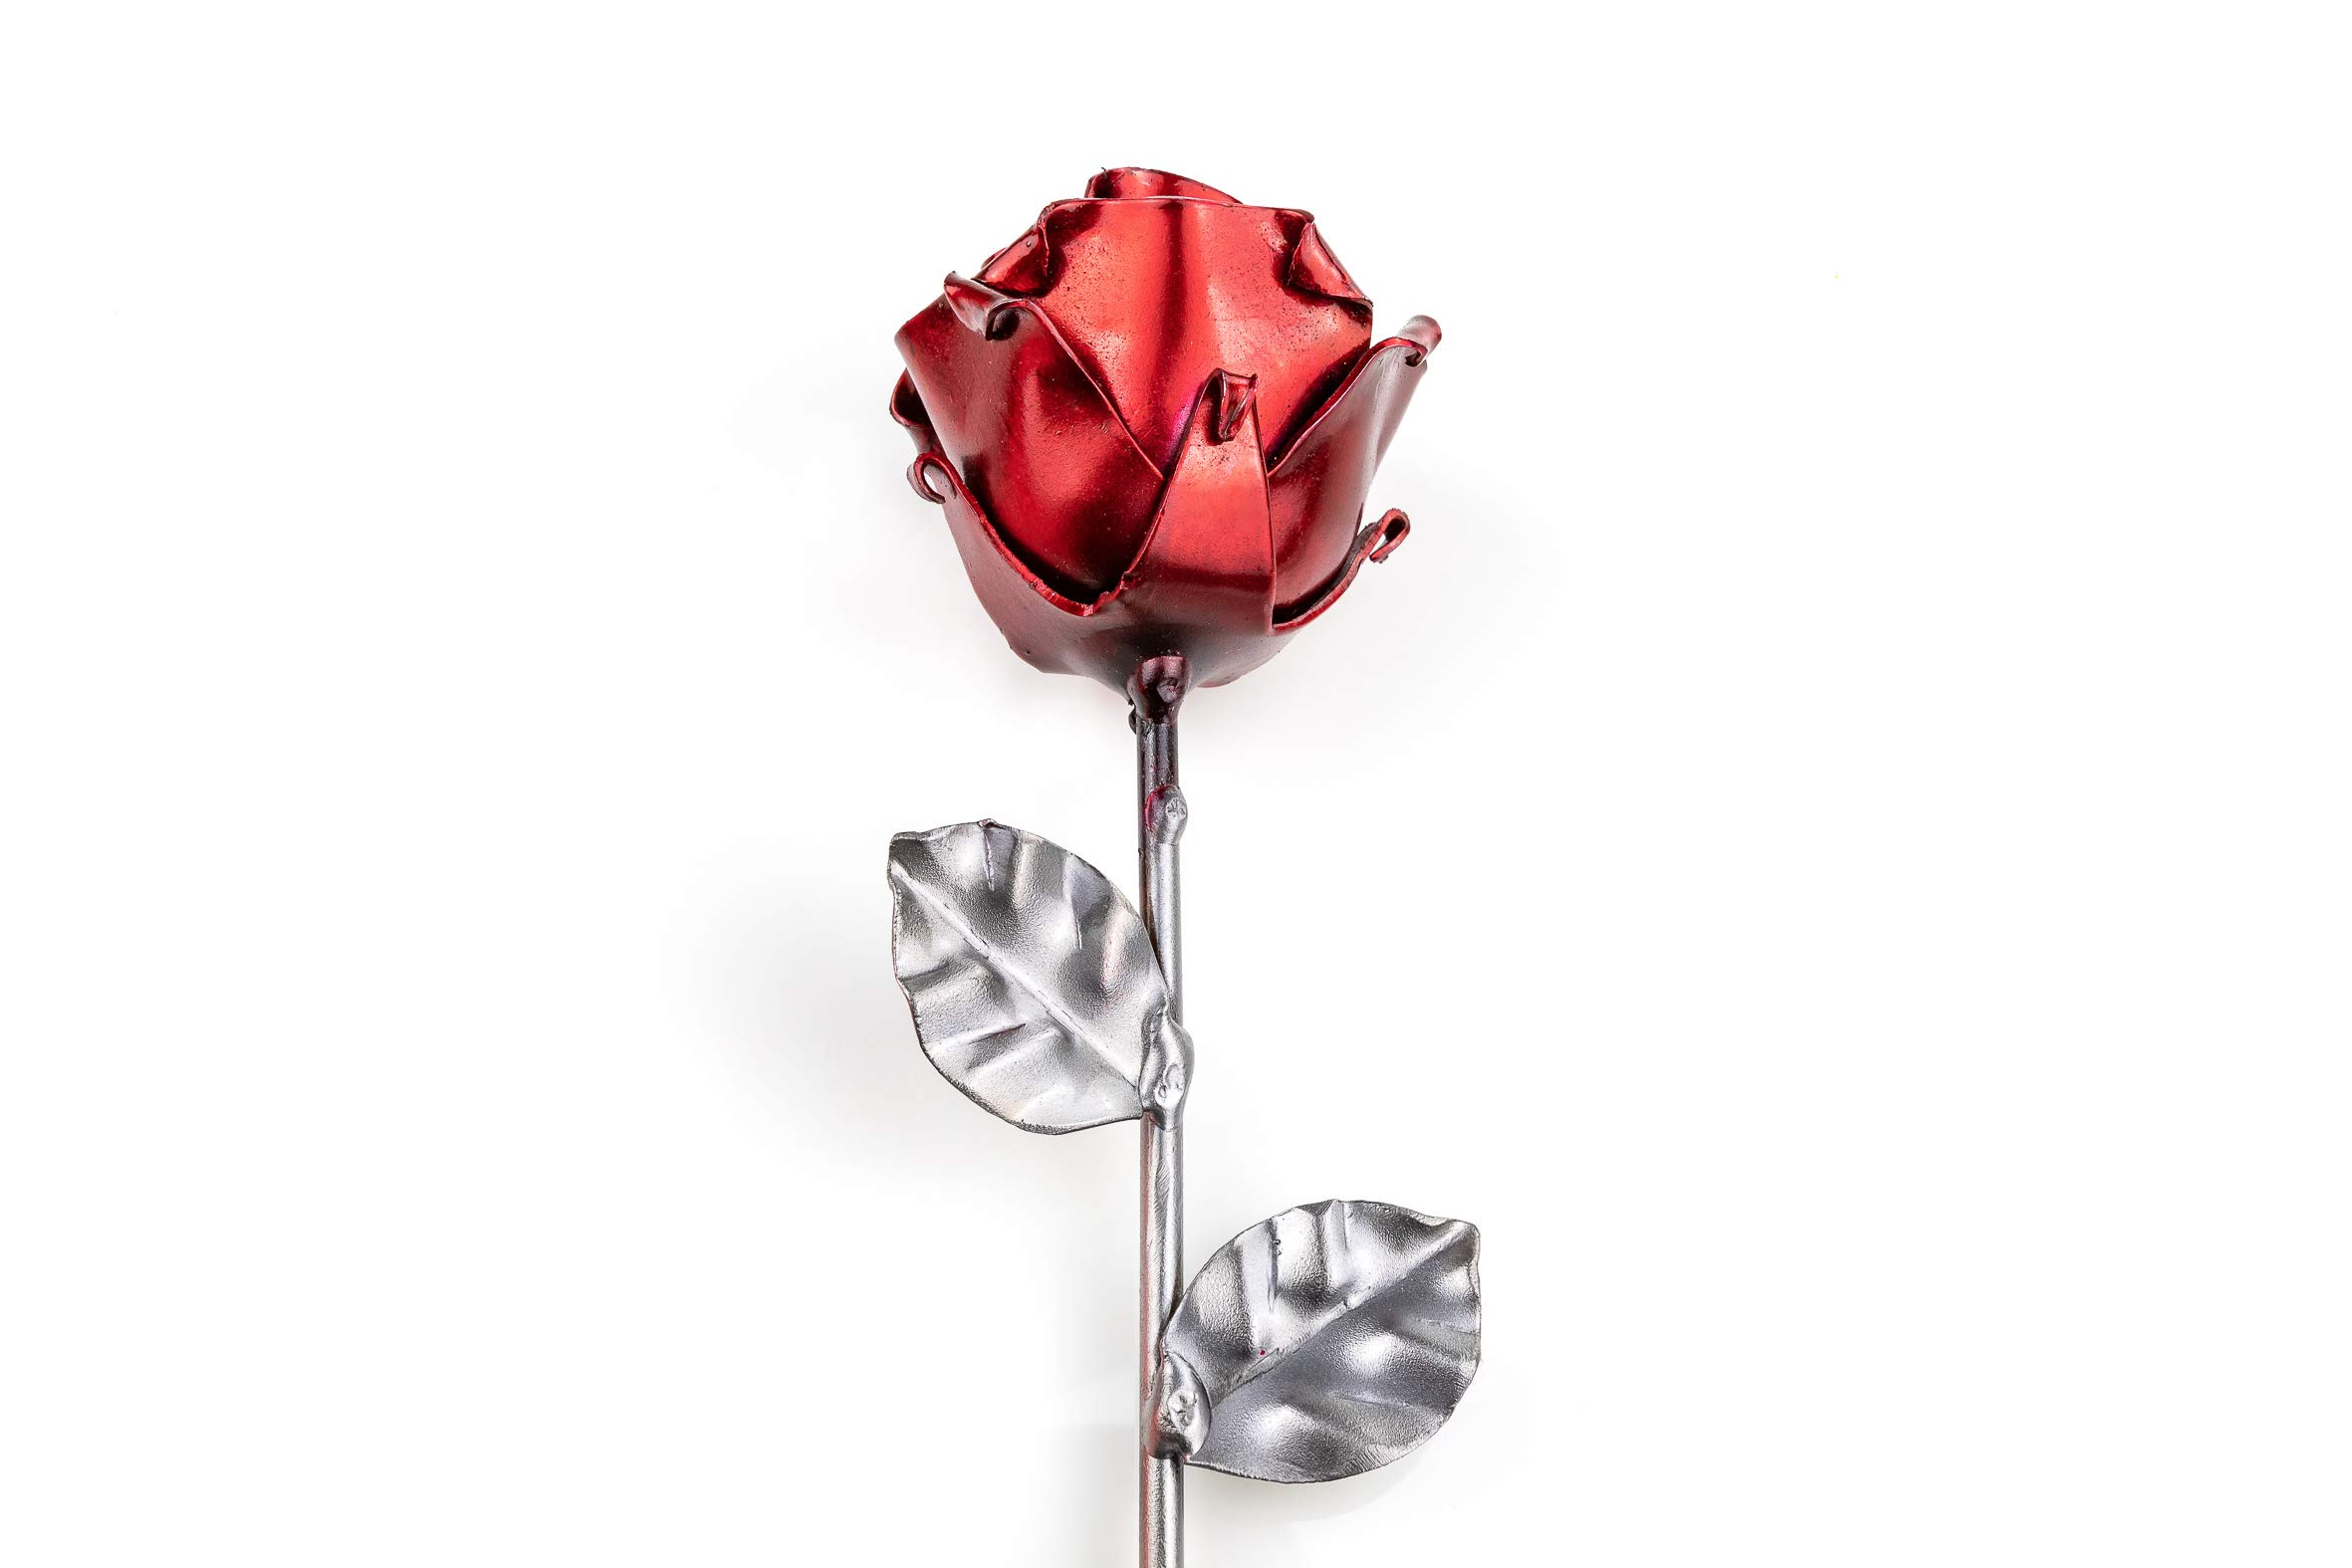 -Eternal-Rose-Hand-Forged-Wrought-IronIdeal-gift-fo-Valentines-Day-Girlfriend-Mothers-Day-Couple-Birthday-Christmas-Wedding-Day-Anniversary-Gift-Decor-Indoor